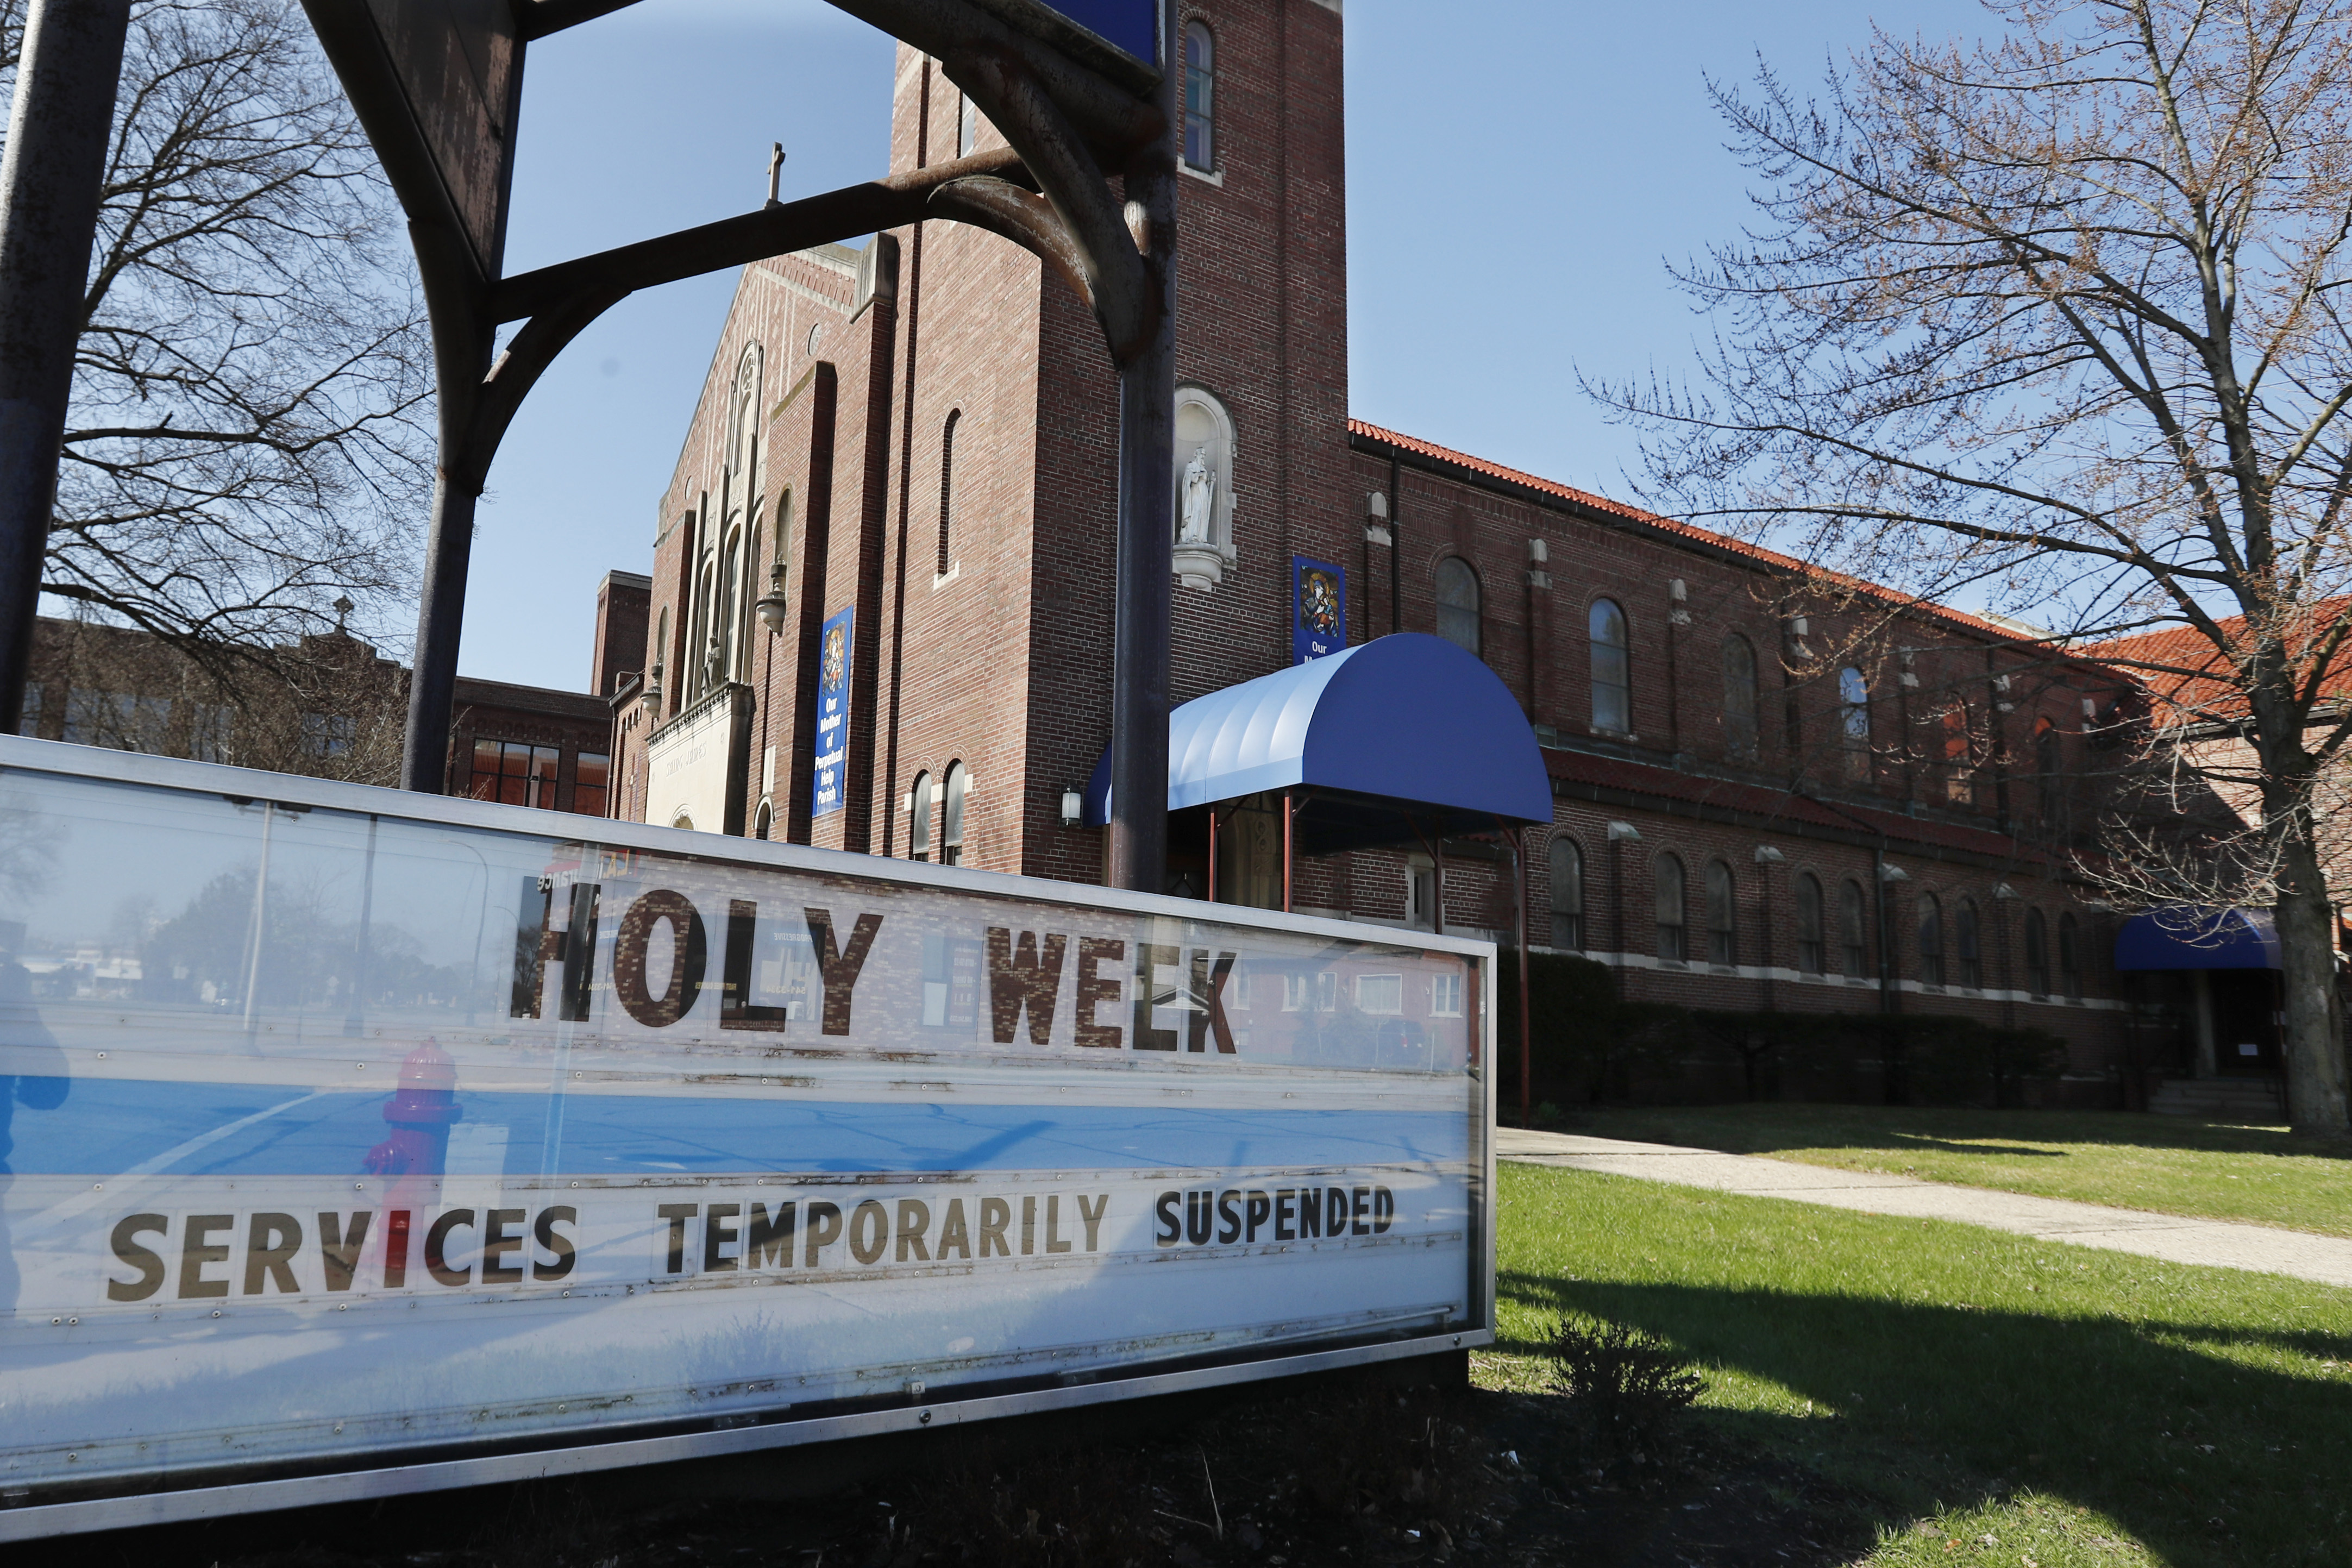 A sign highlighting Holy Week activities is displayed outside the Our Mother of Perpetual Help- St. James Parish, Wednesday, April 8, 2020, in Ferndale, Mich. Church activities during Holy Week are being suspended across the state and the world as the coronavirus pandemic continues spreading.